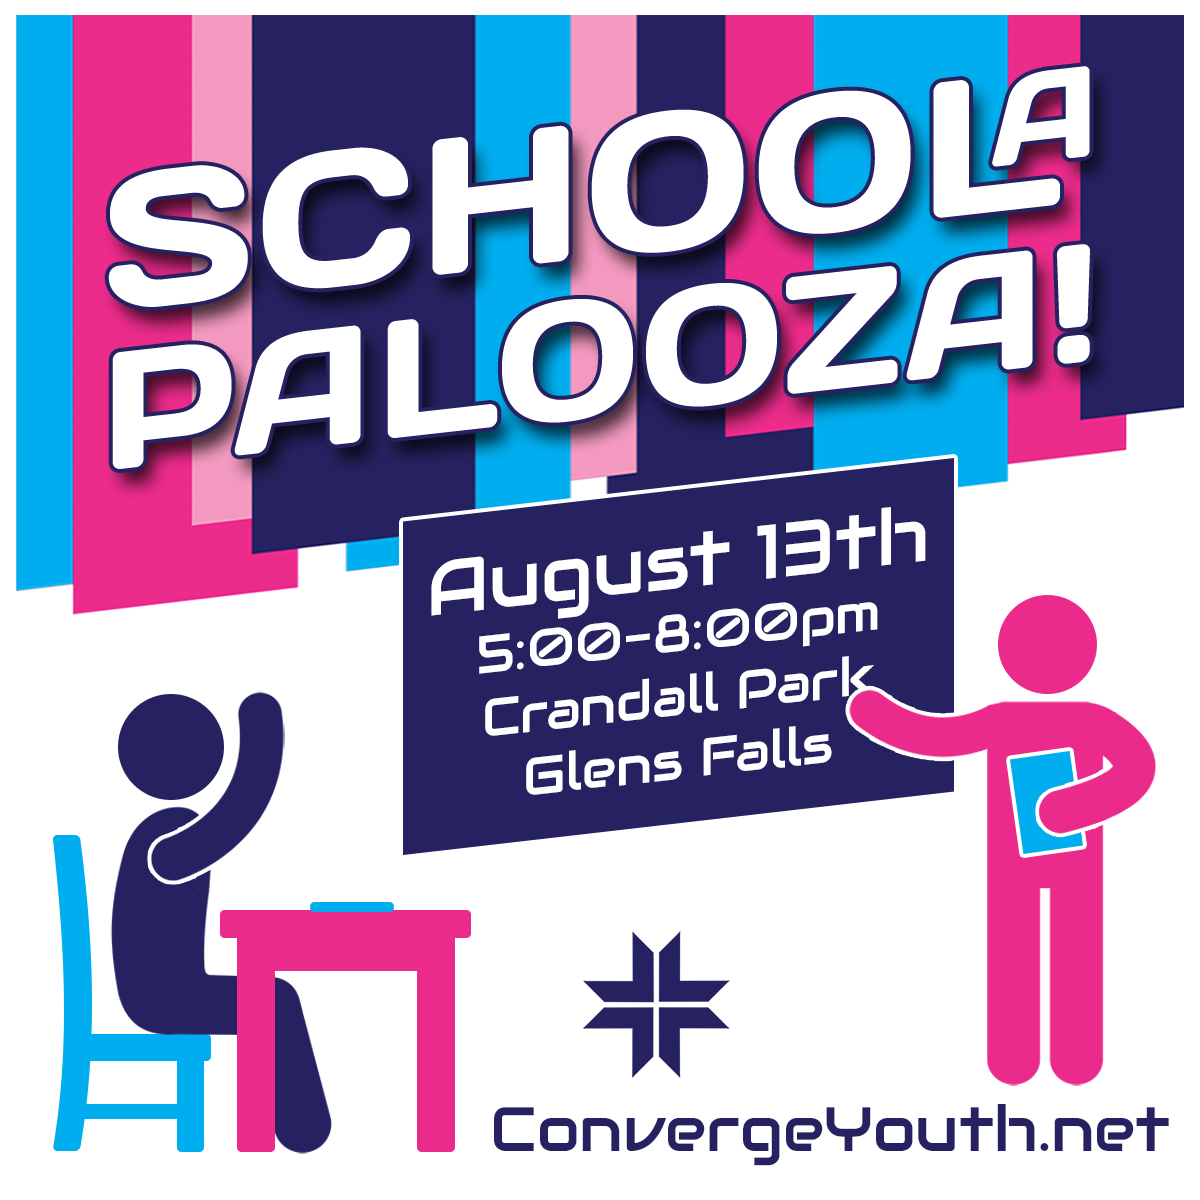 Share about Schoolapalooza coming on August 13th!